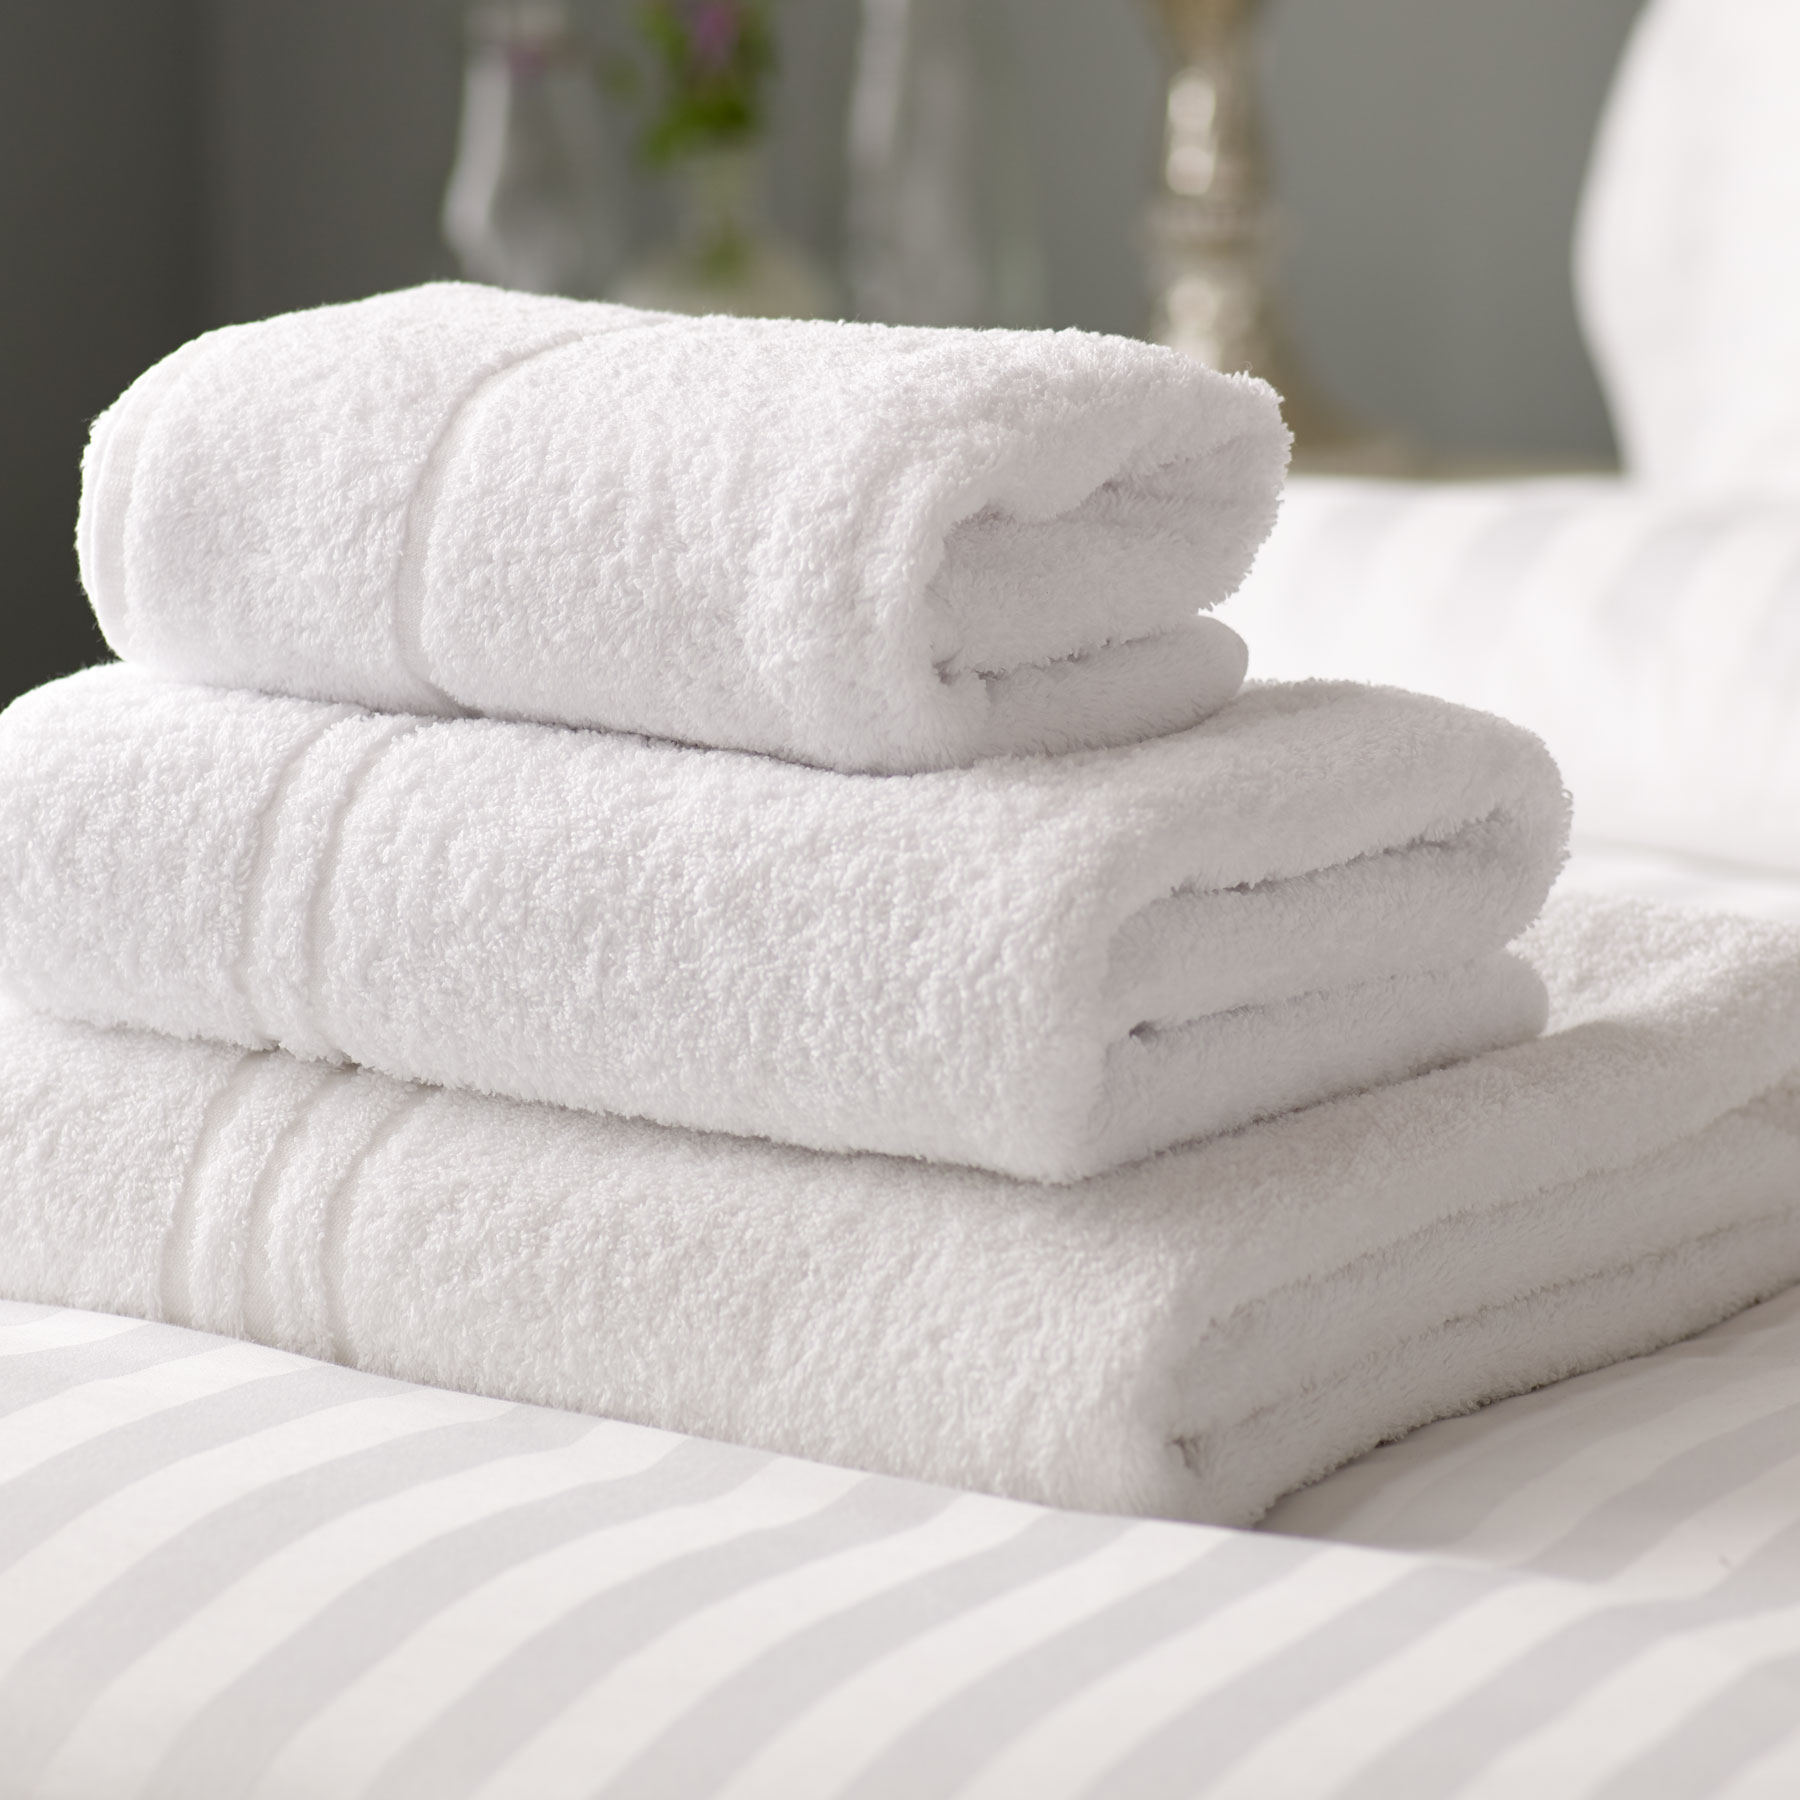 View Bath Linen Collection Details